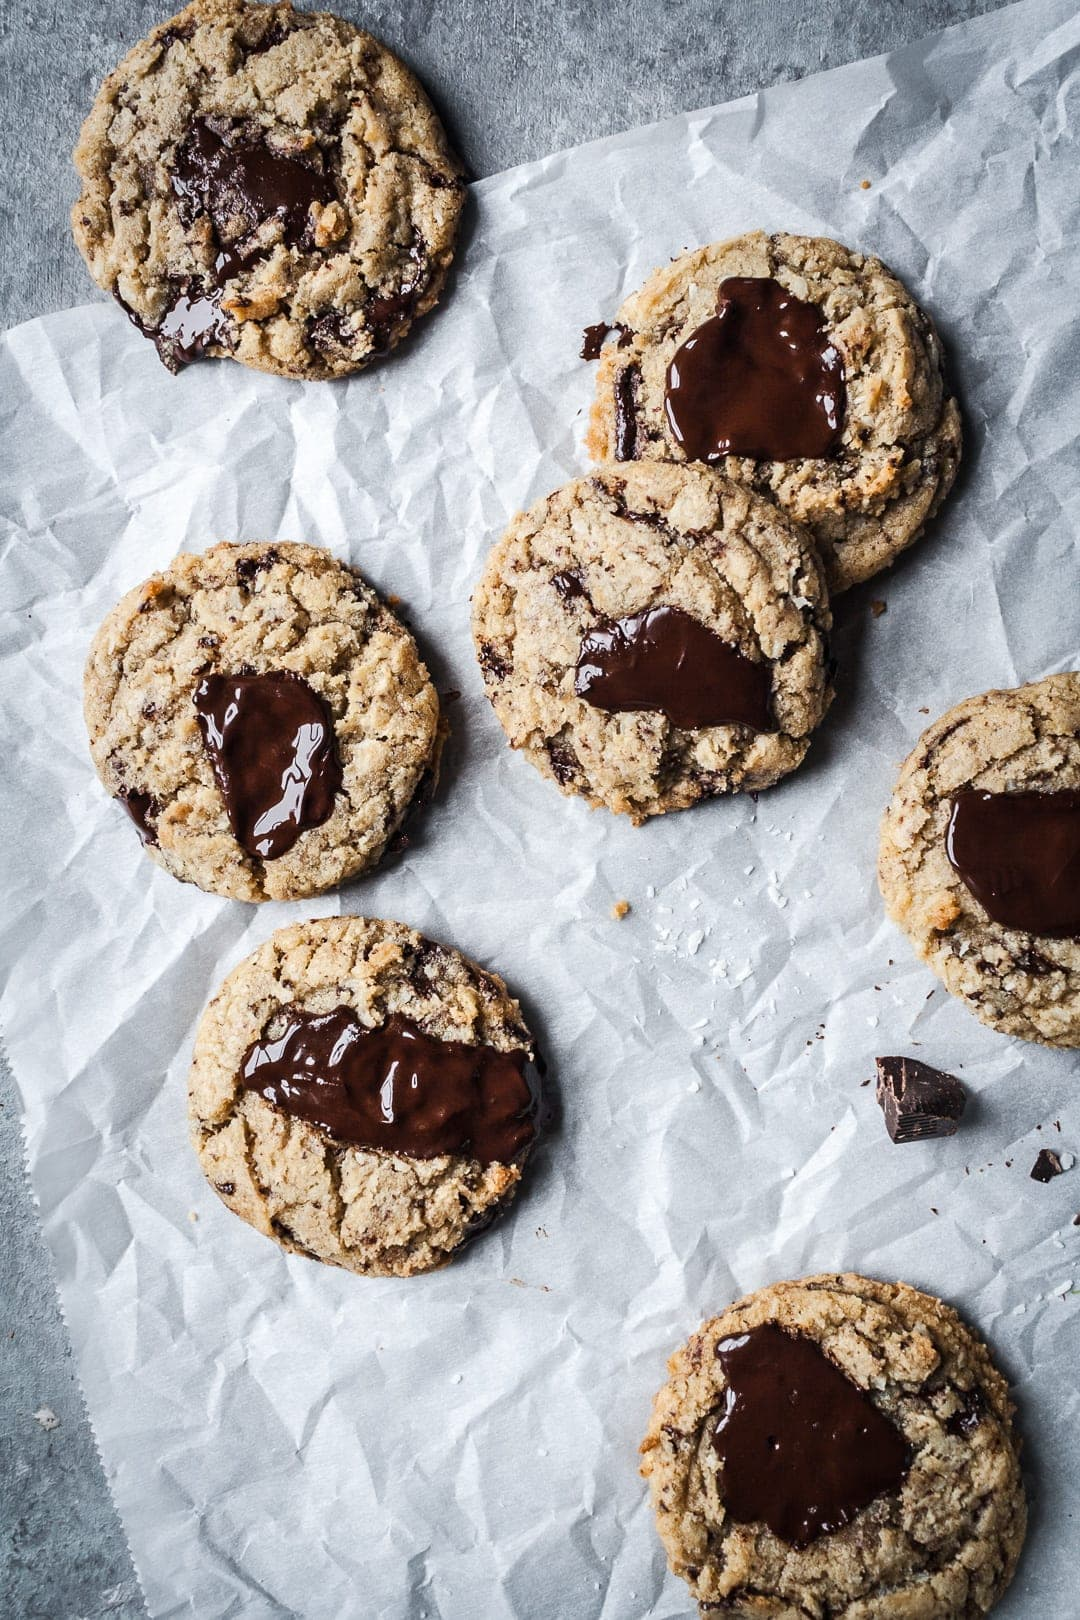 Top view of freshly baked coconut chocolate chip cookies with melted pools of chocolate resting on parchment paper